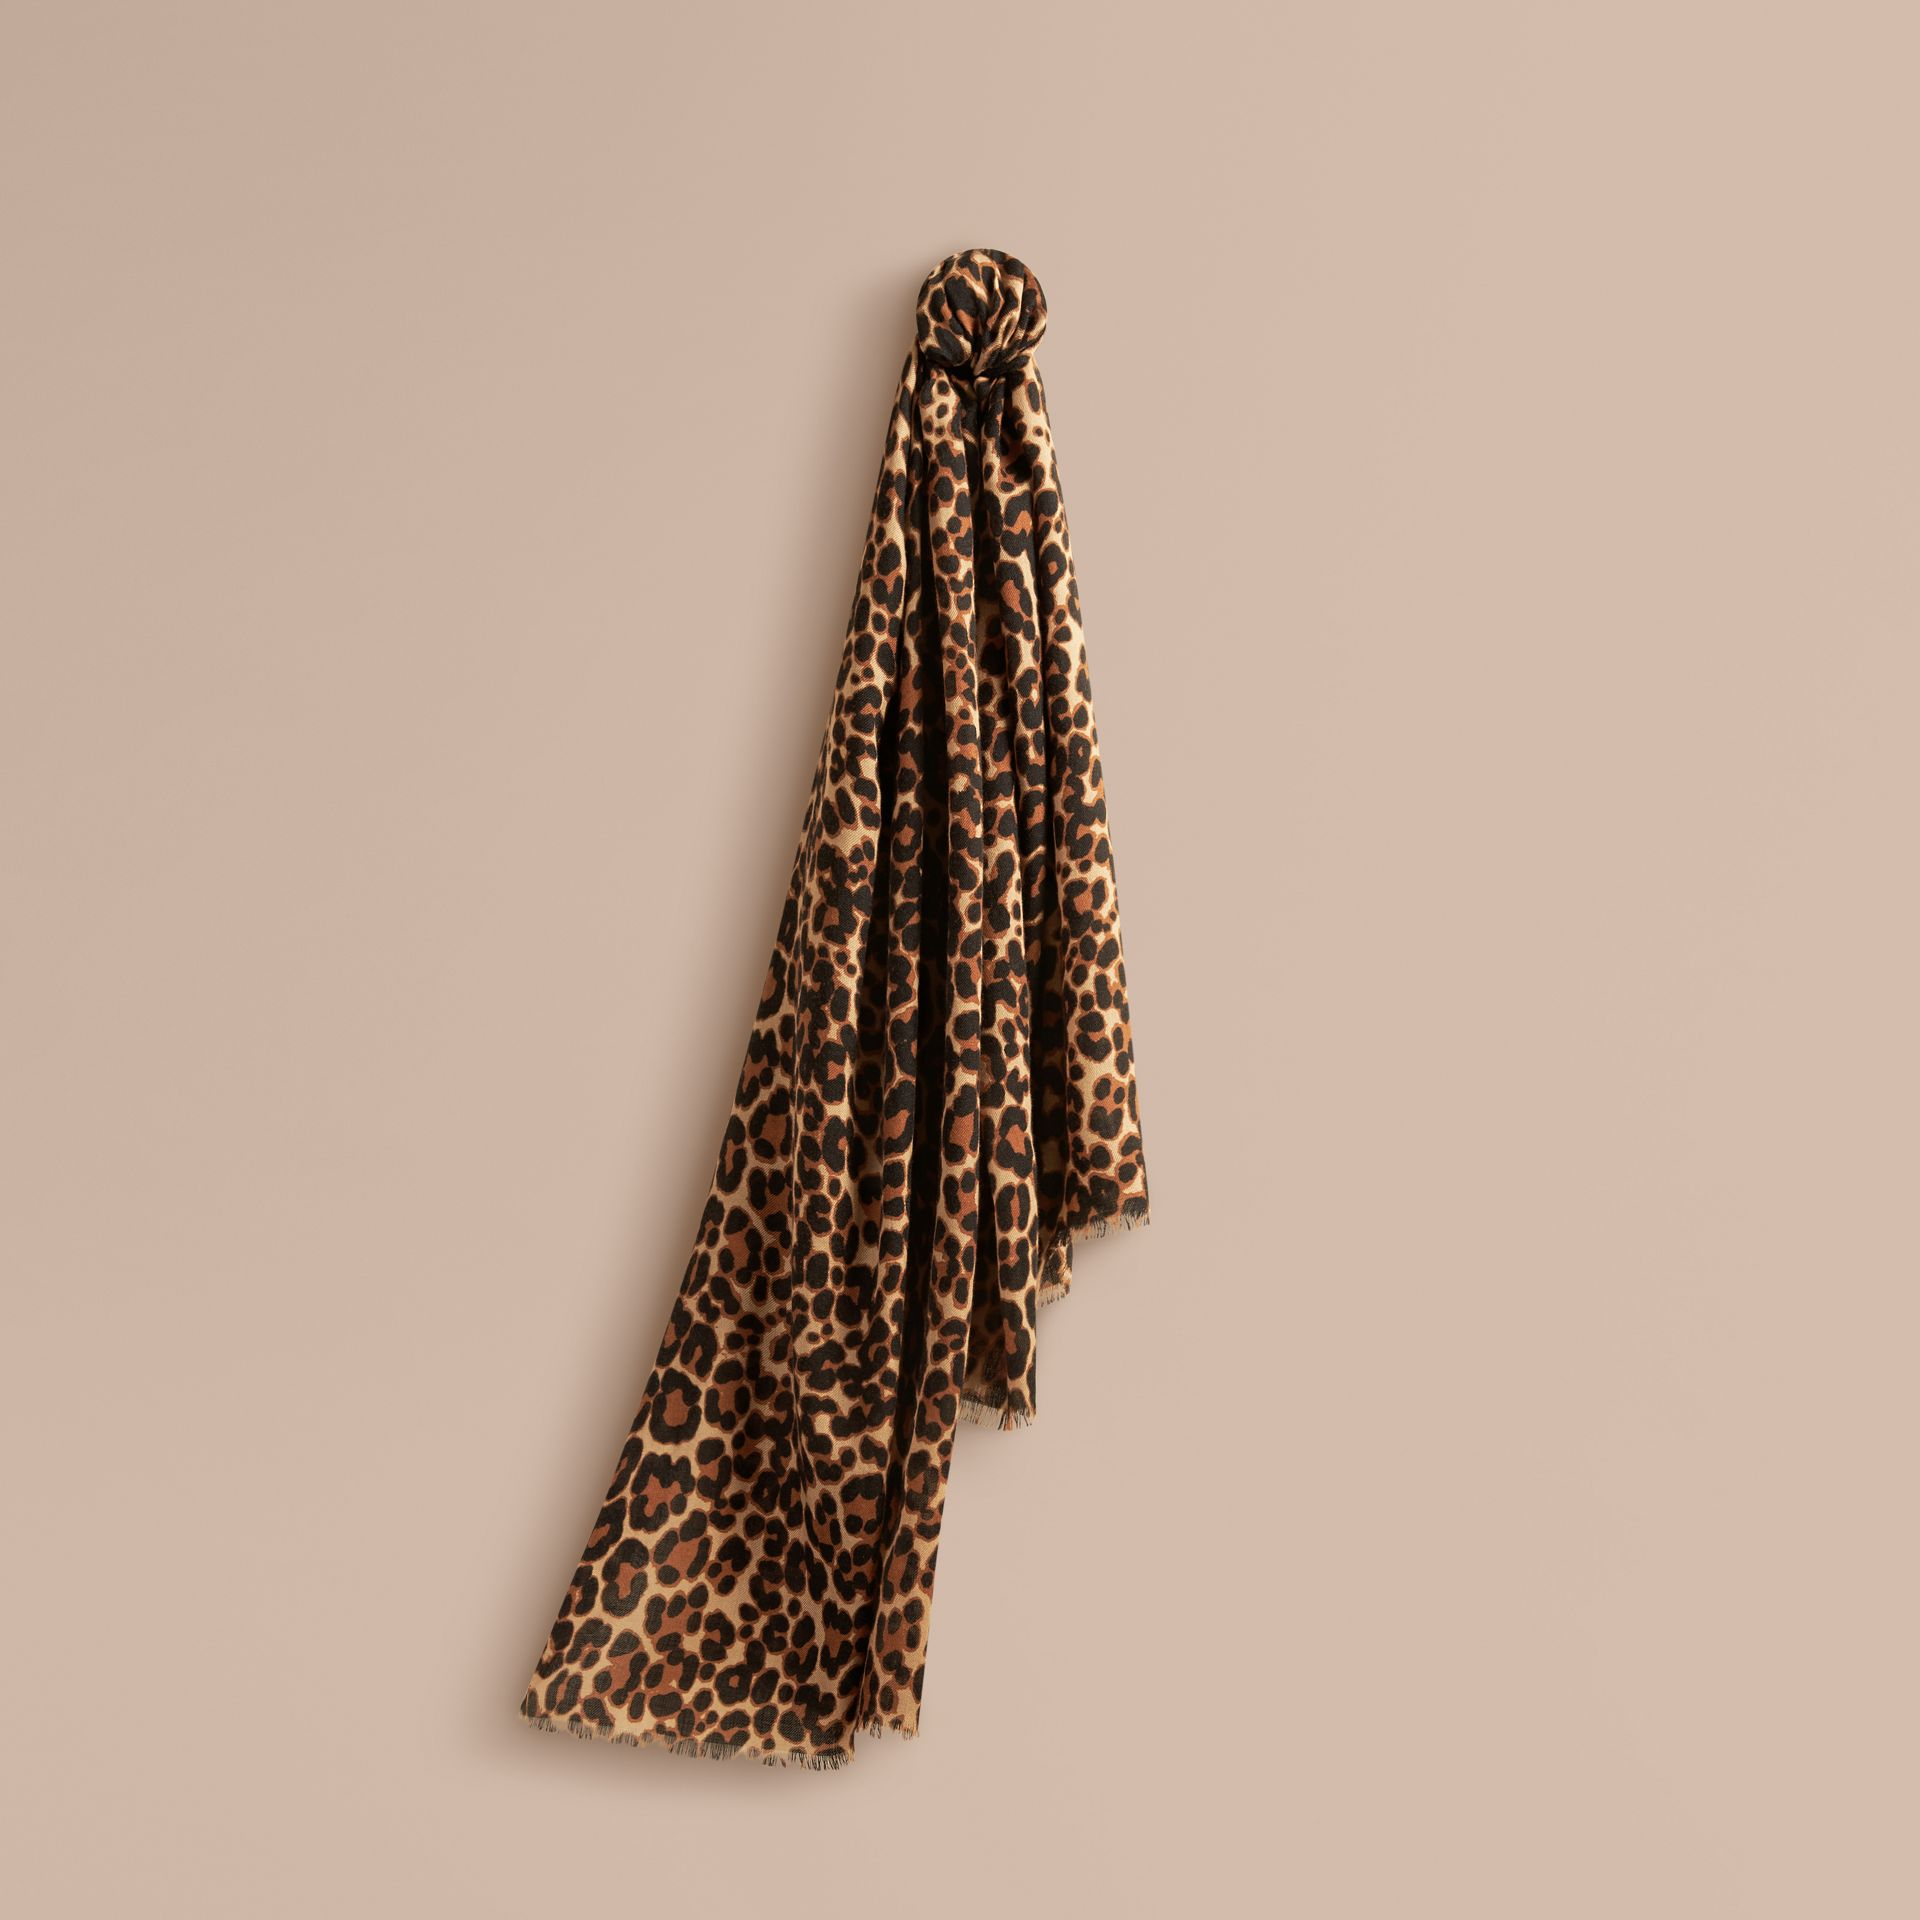 Camel The Lightweight Cashmere Scarf in Animal Print - gallery image 1